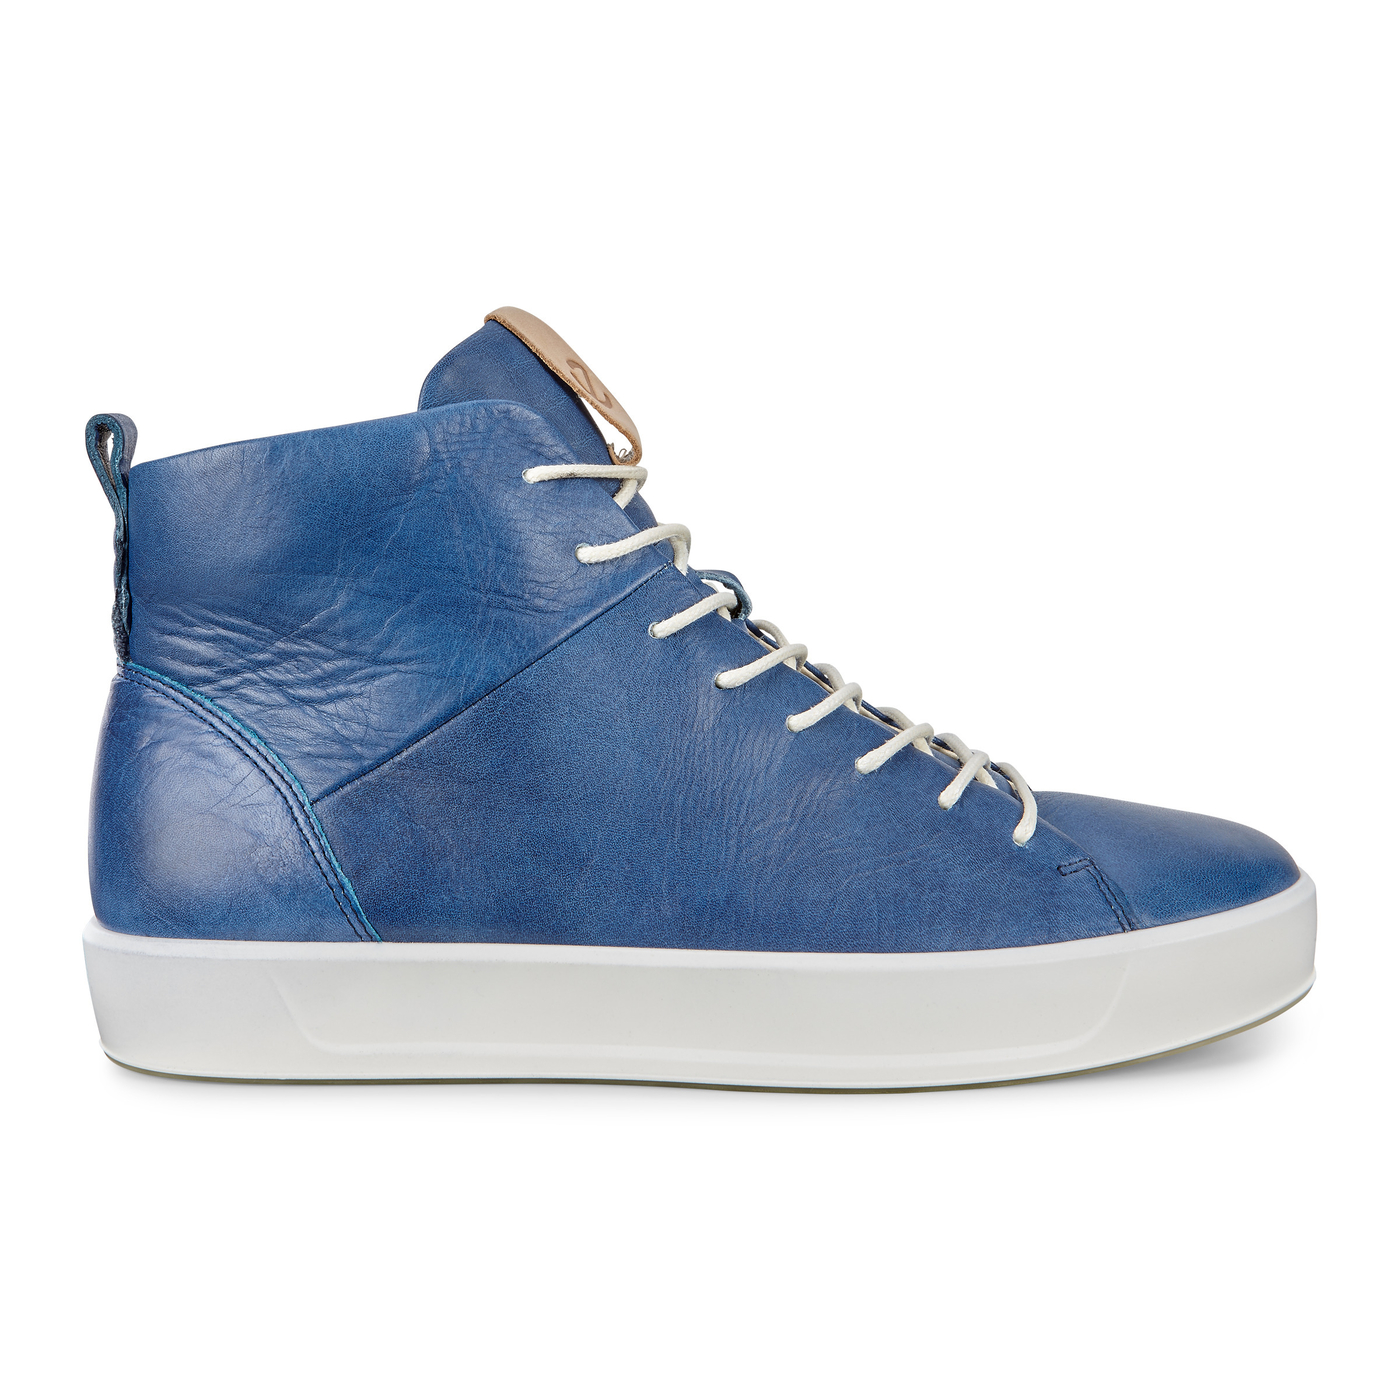 ECCO Soft 8 M High Top